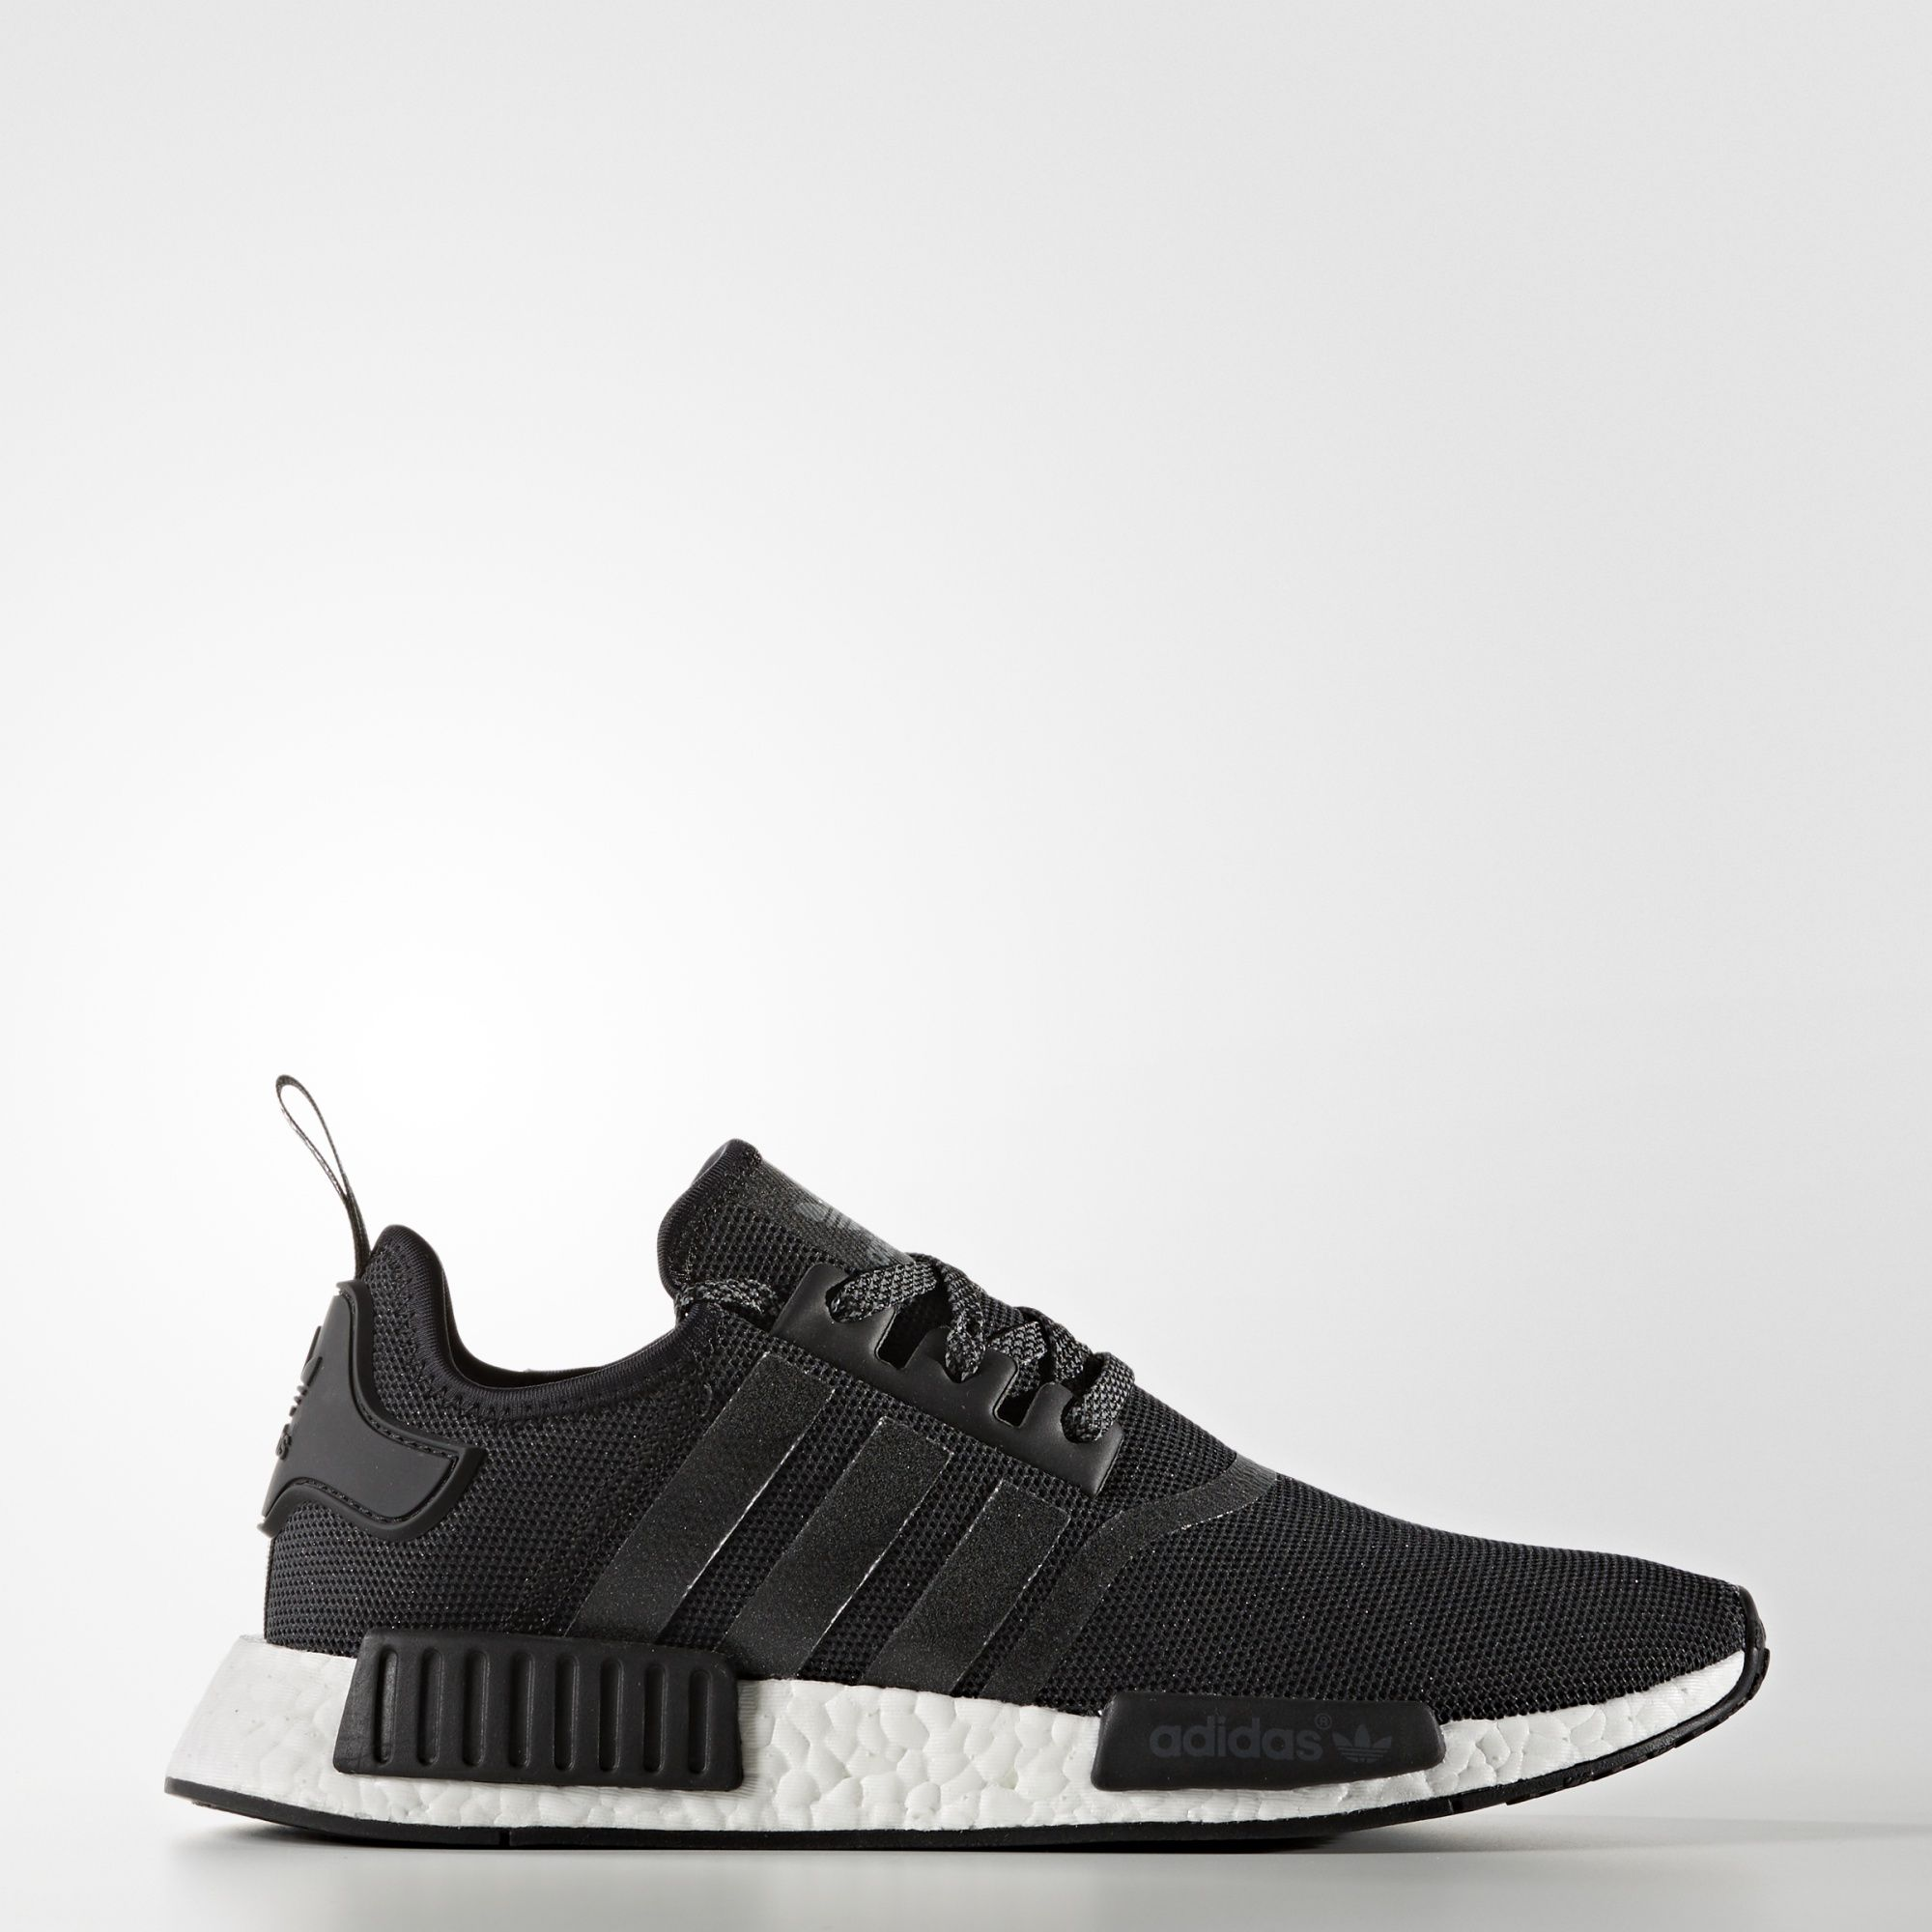 6d9eefd49775 Adidas NMD R1  White Core Black